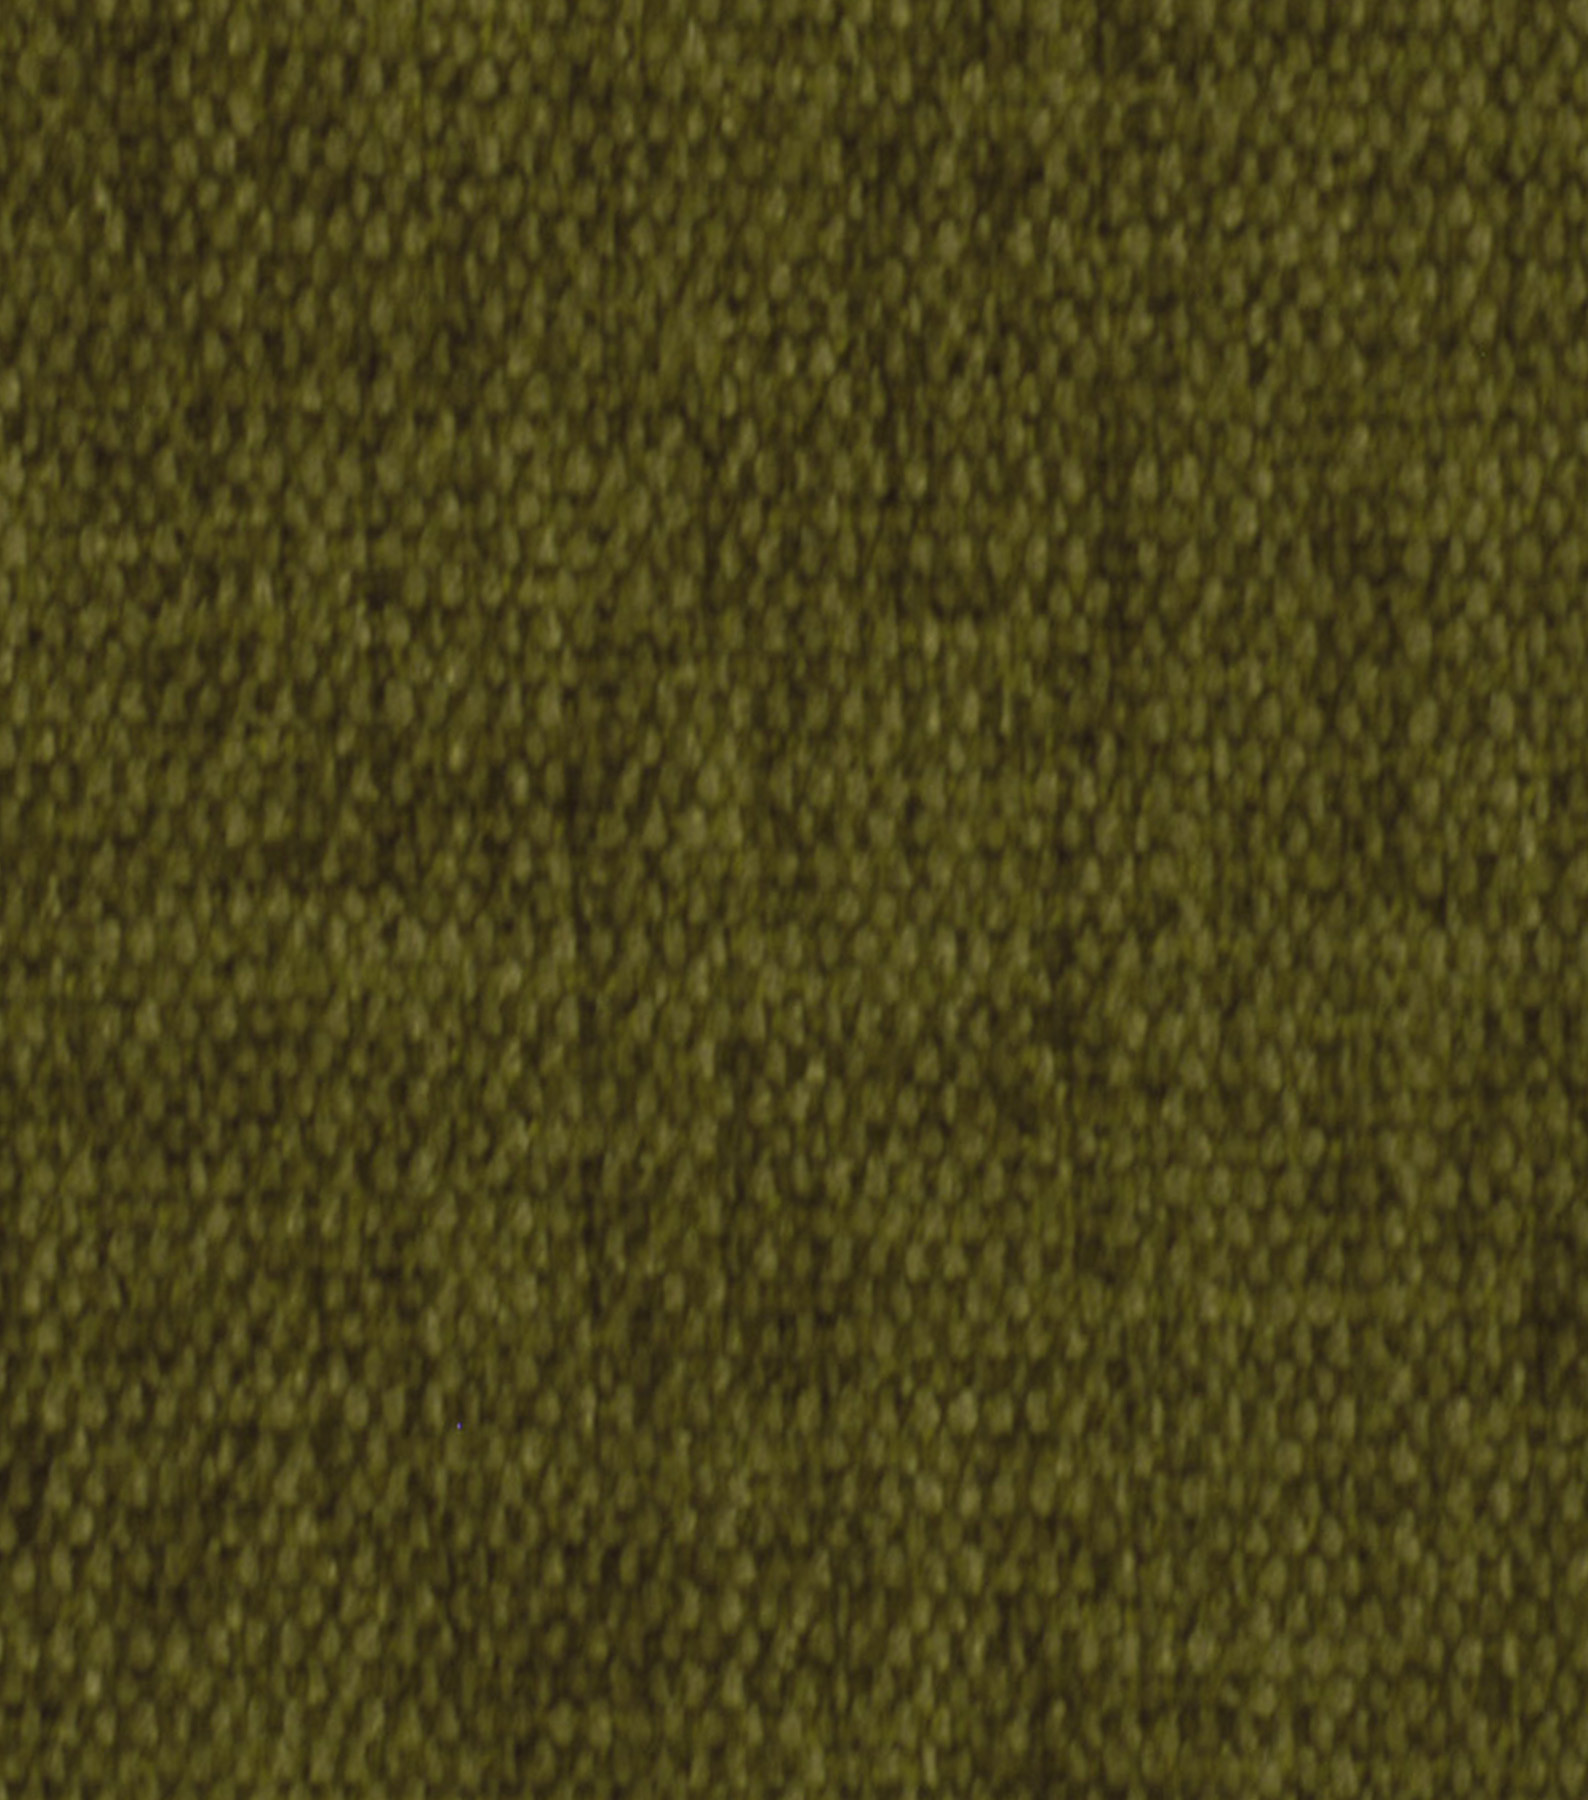 Home Decor 8\u0022x8\u0022 Fabric Swatch-Signature Series Rodez Loden